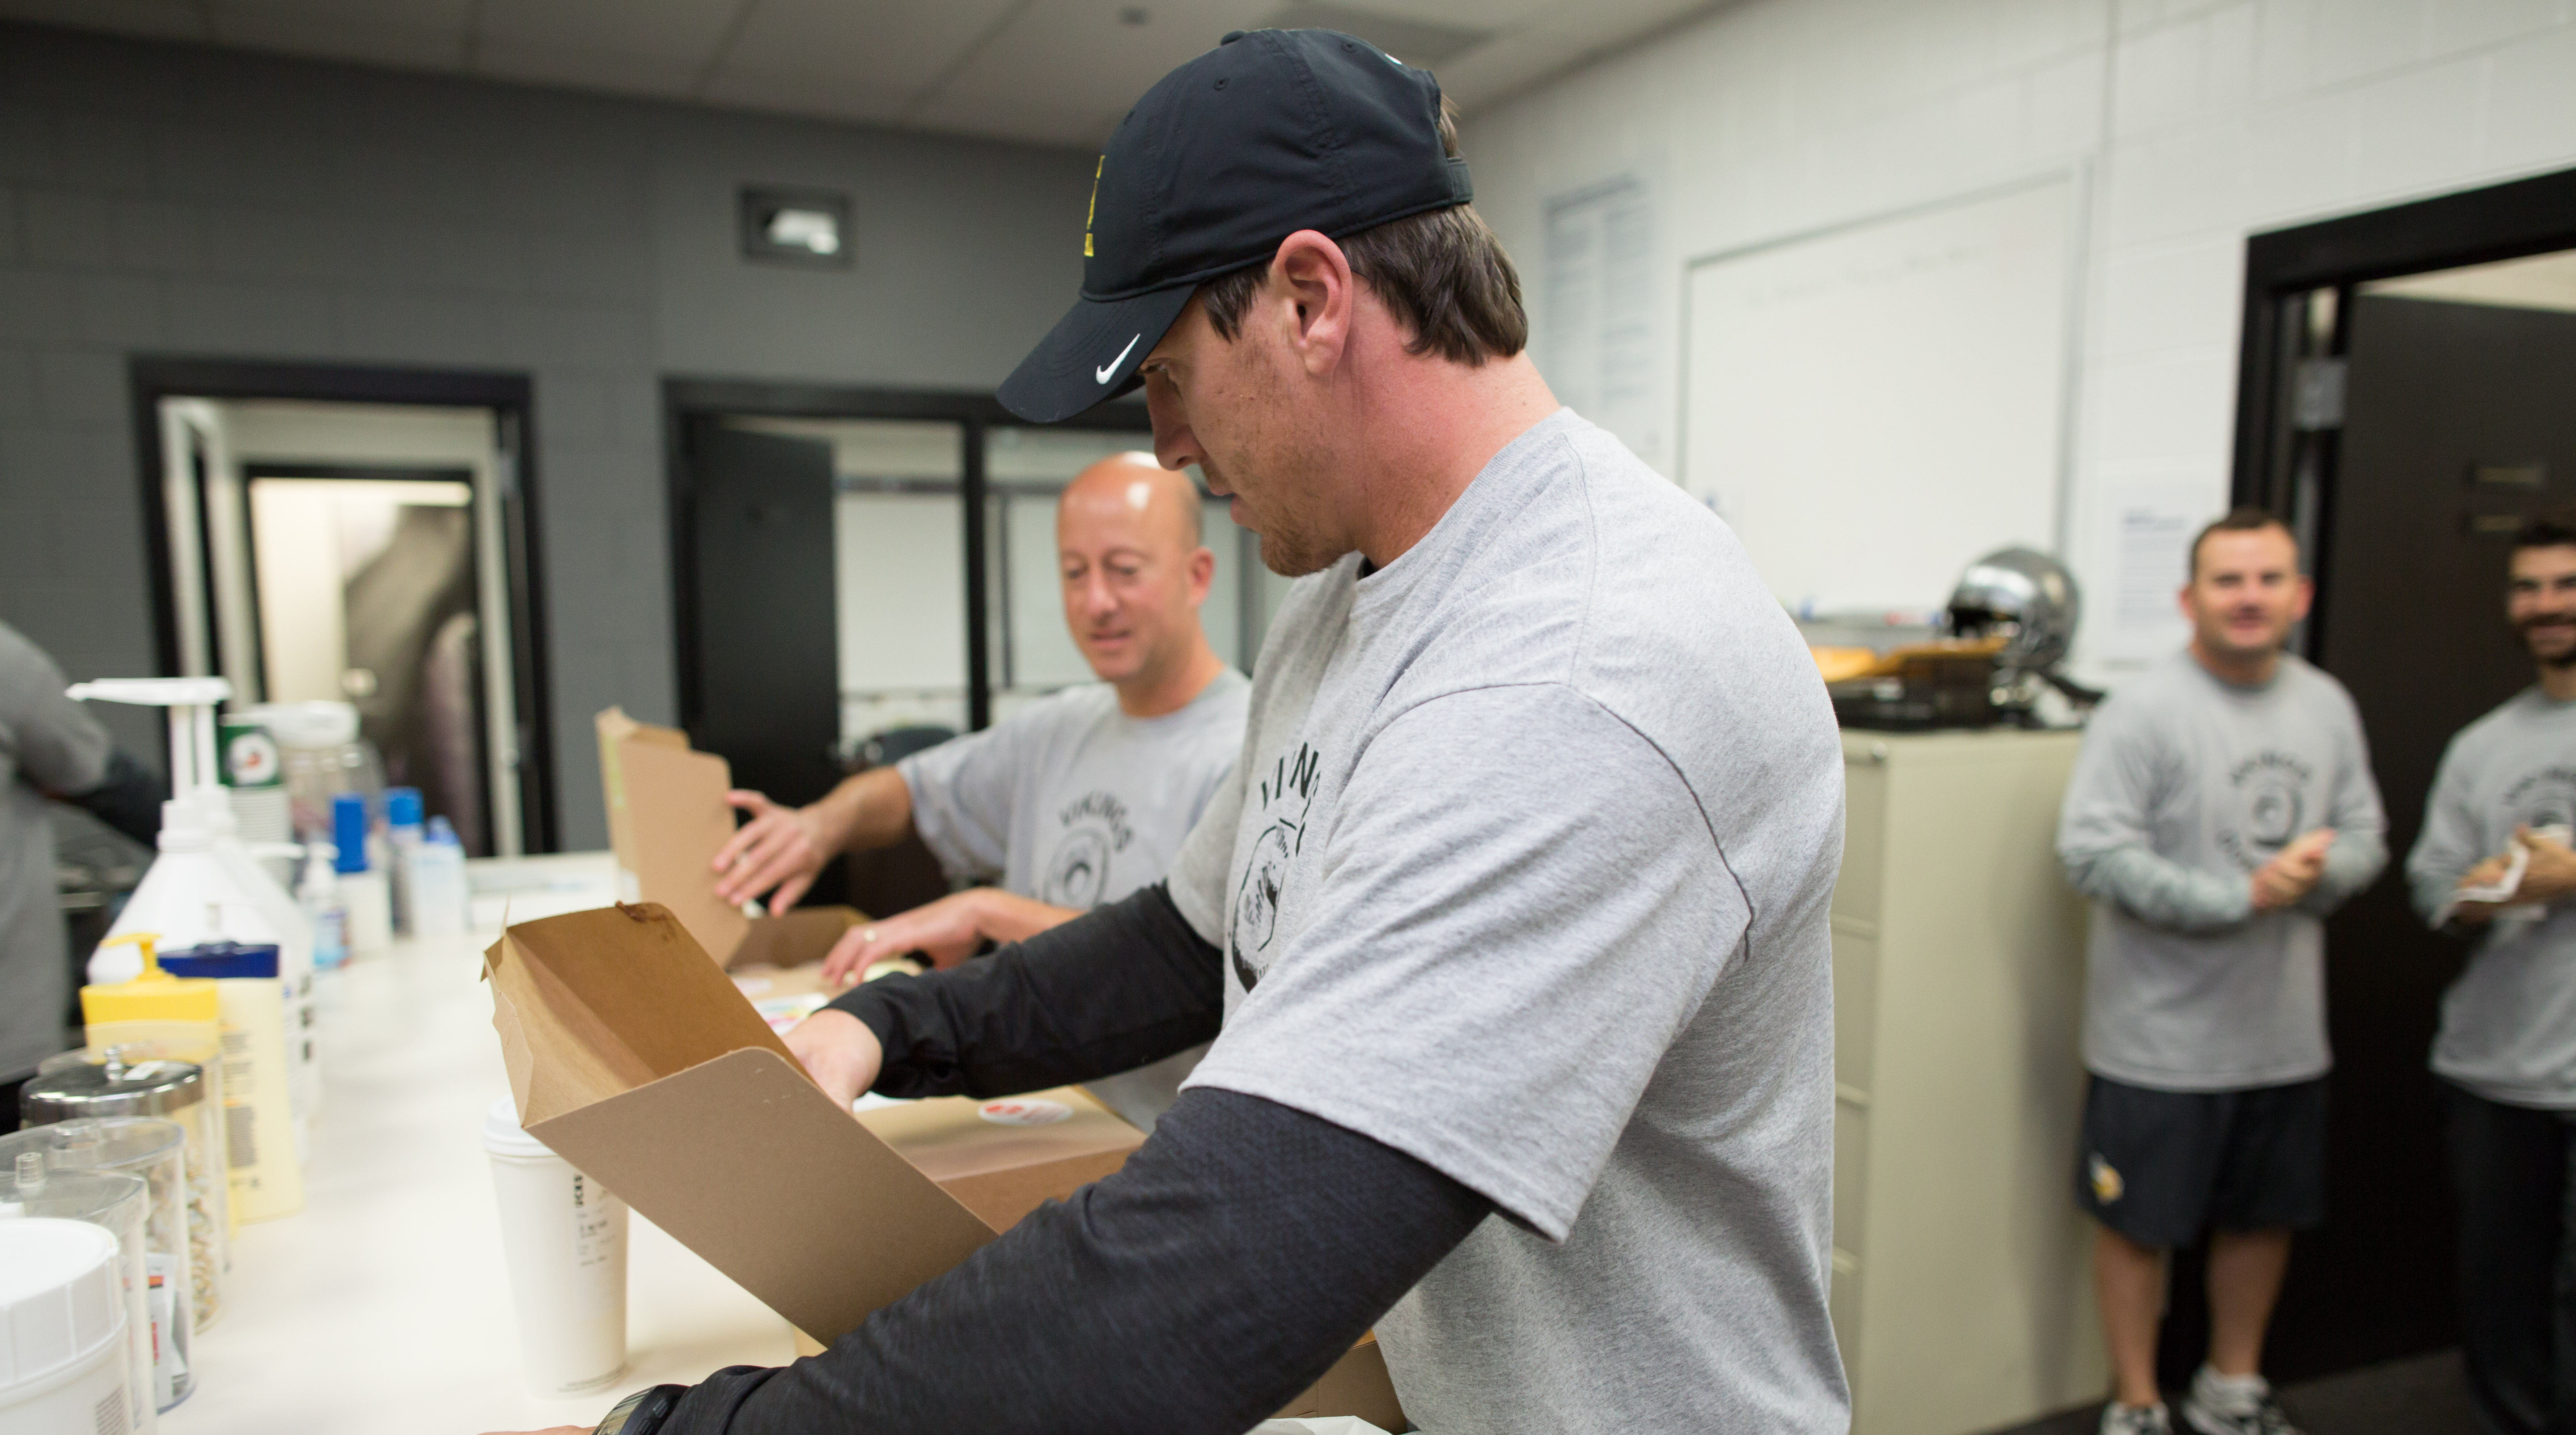 Eric Sugarman and Chad Greenway open up the donut boxes to begin the viewing period.